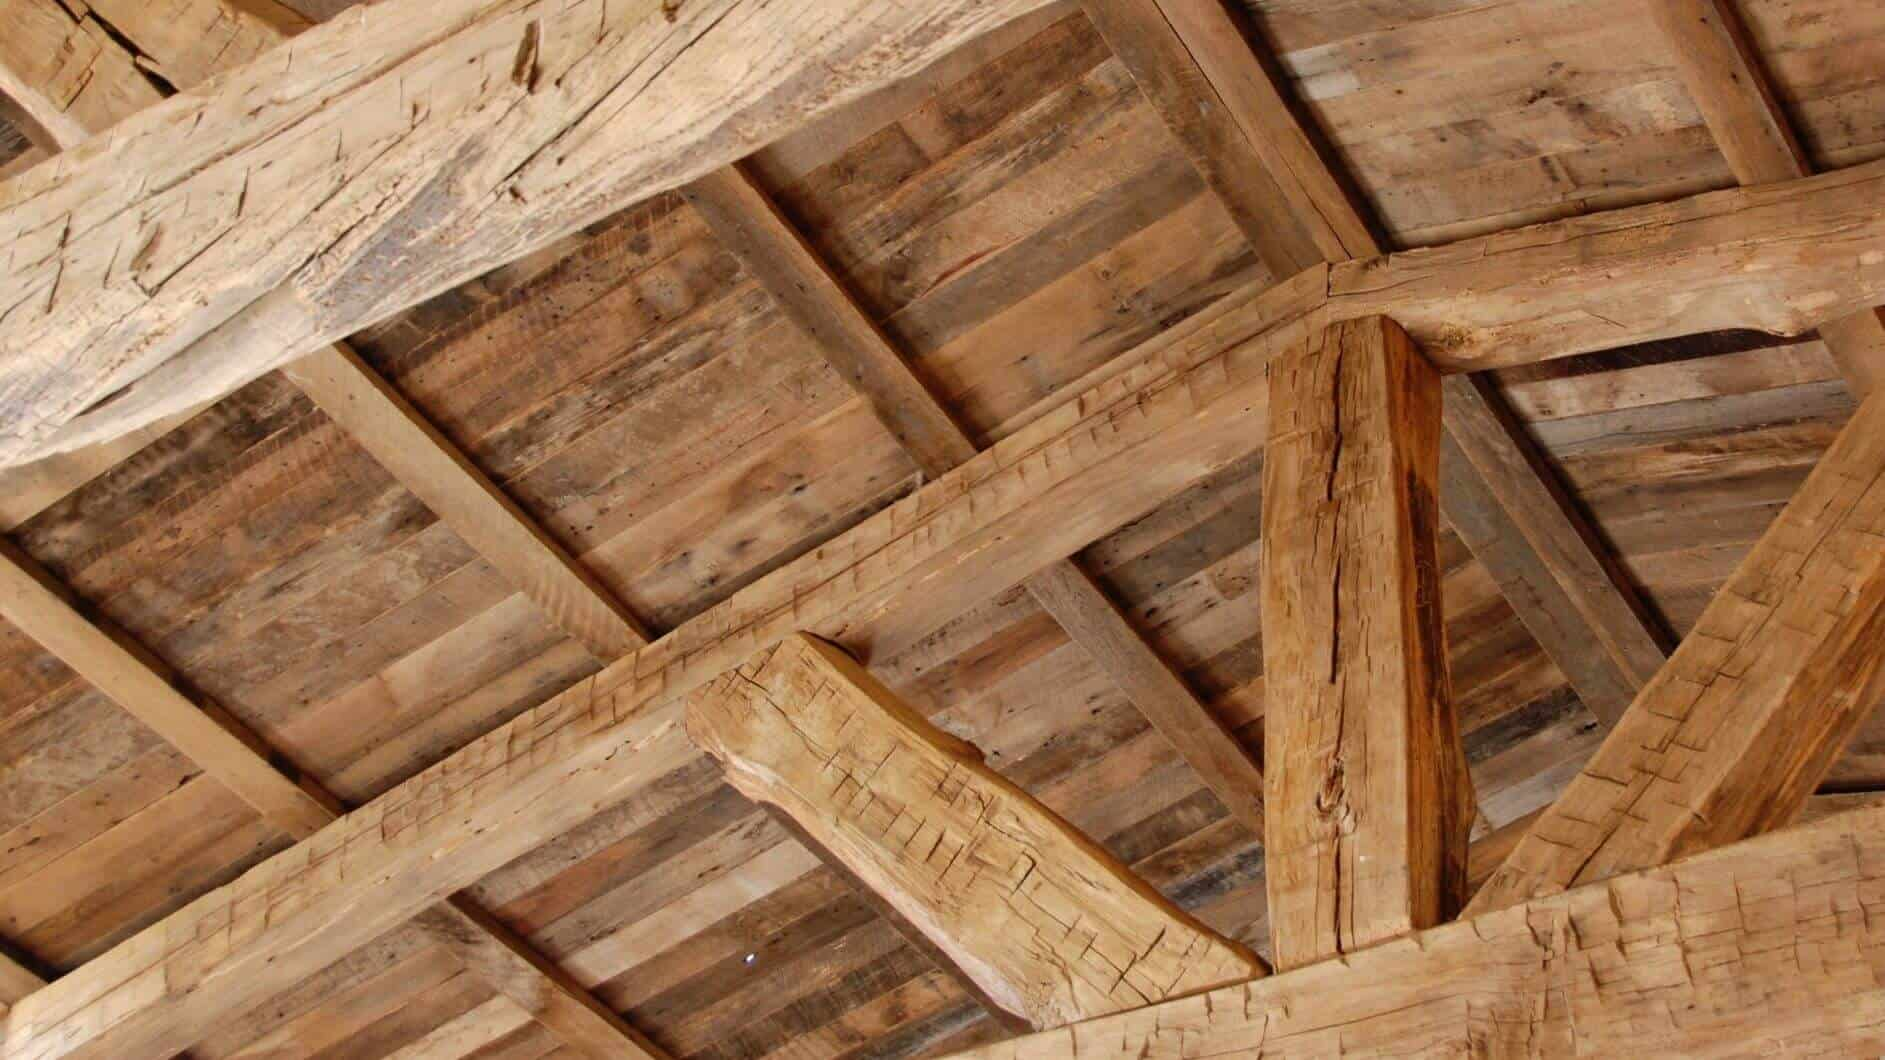 Live Edge Truss Detail 1 - Reclaimed Faux Beams vs. Solid Beams - Which ones are right for your job?